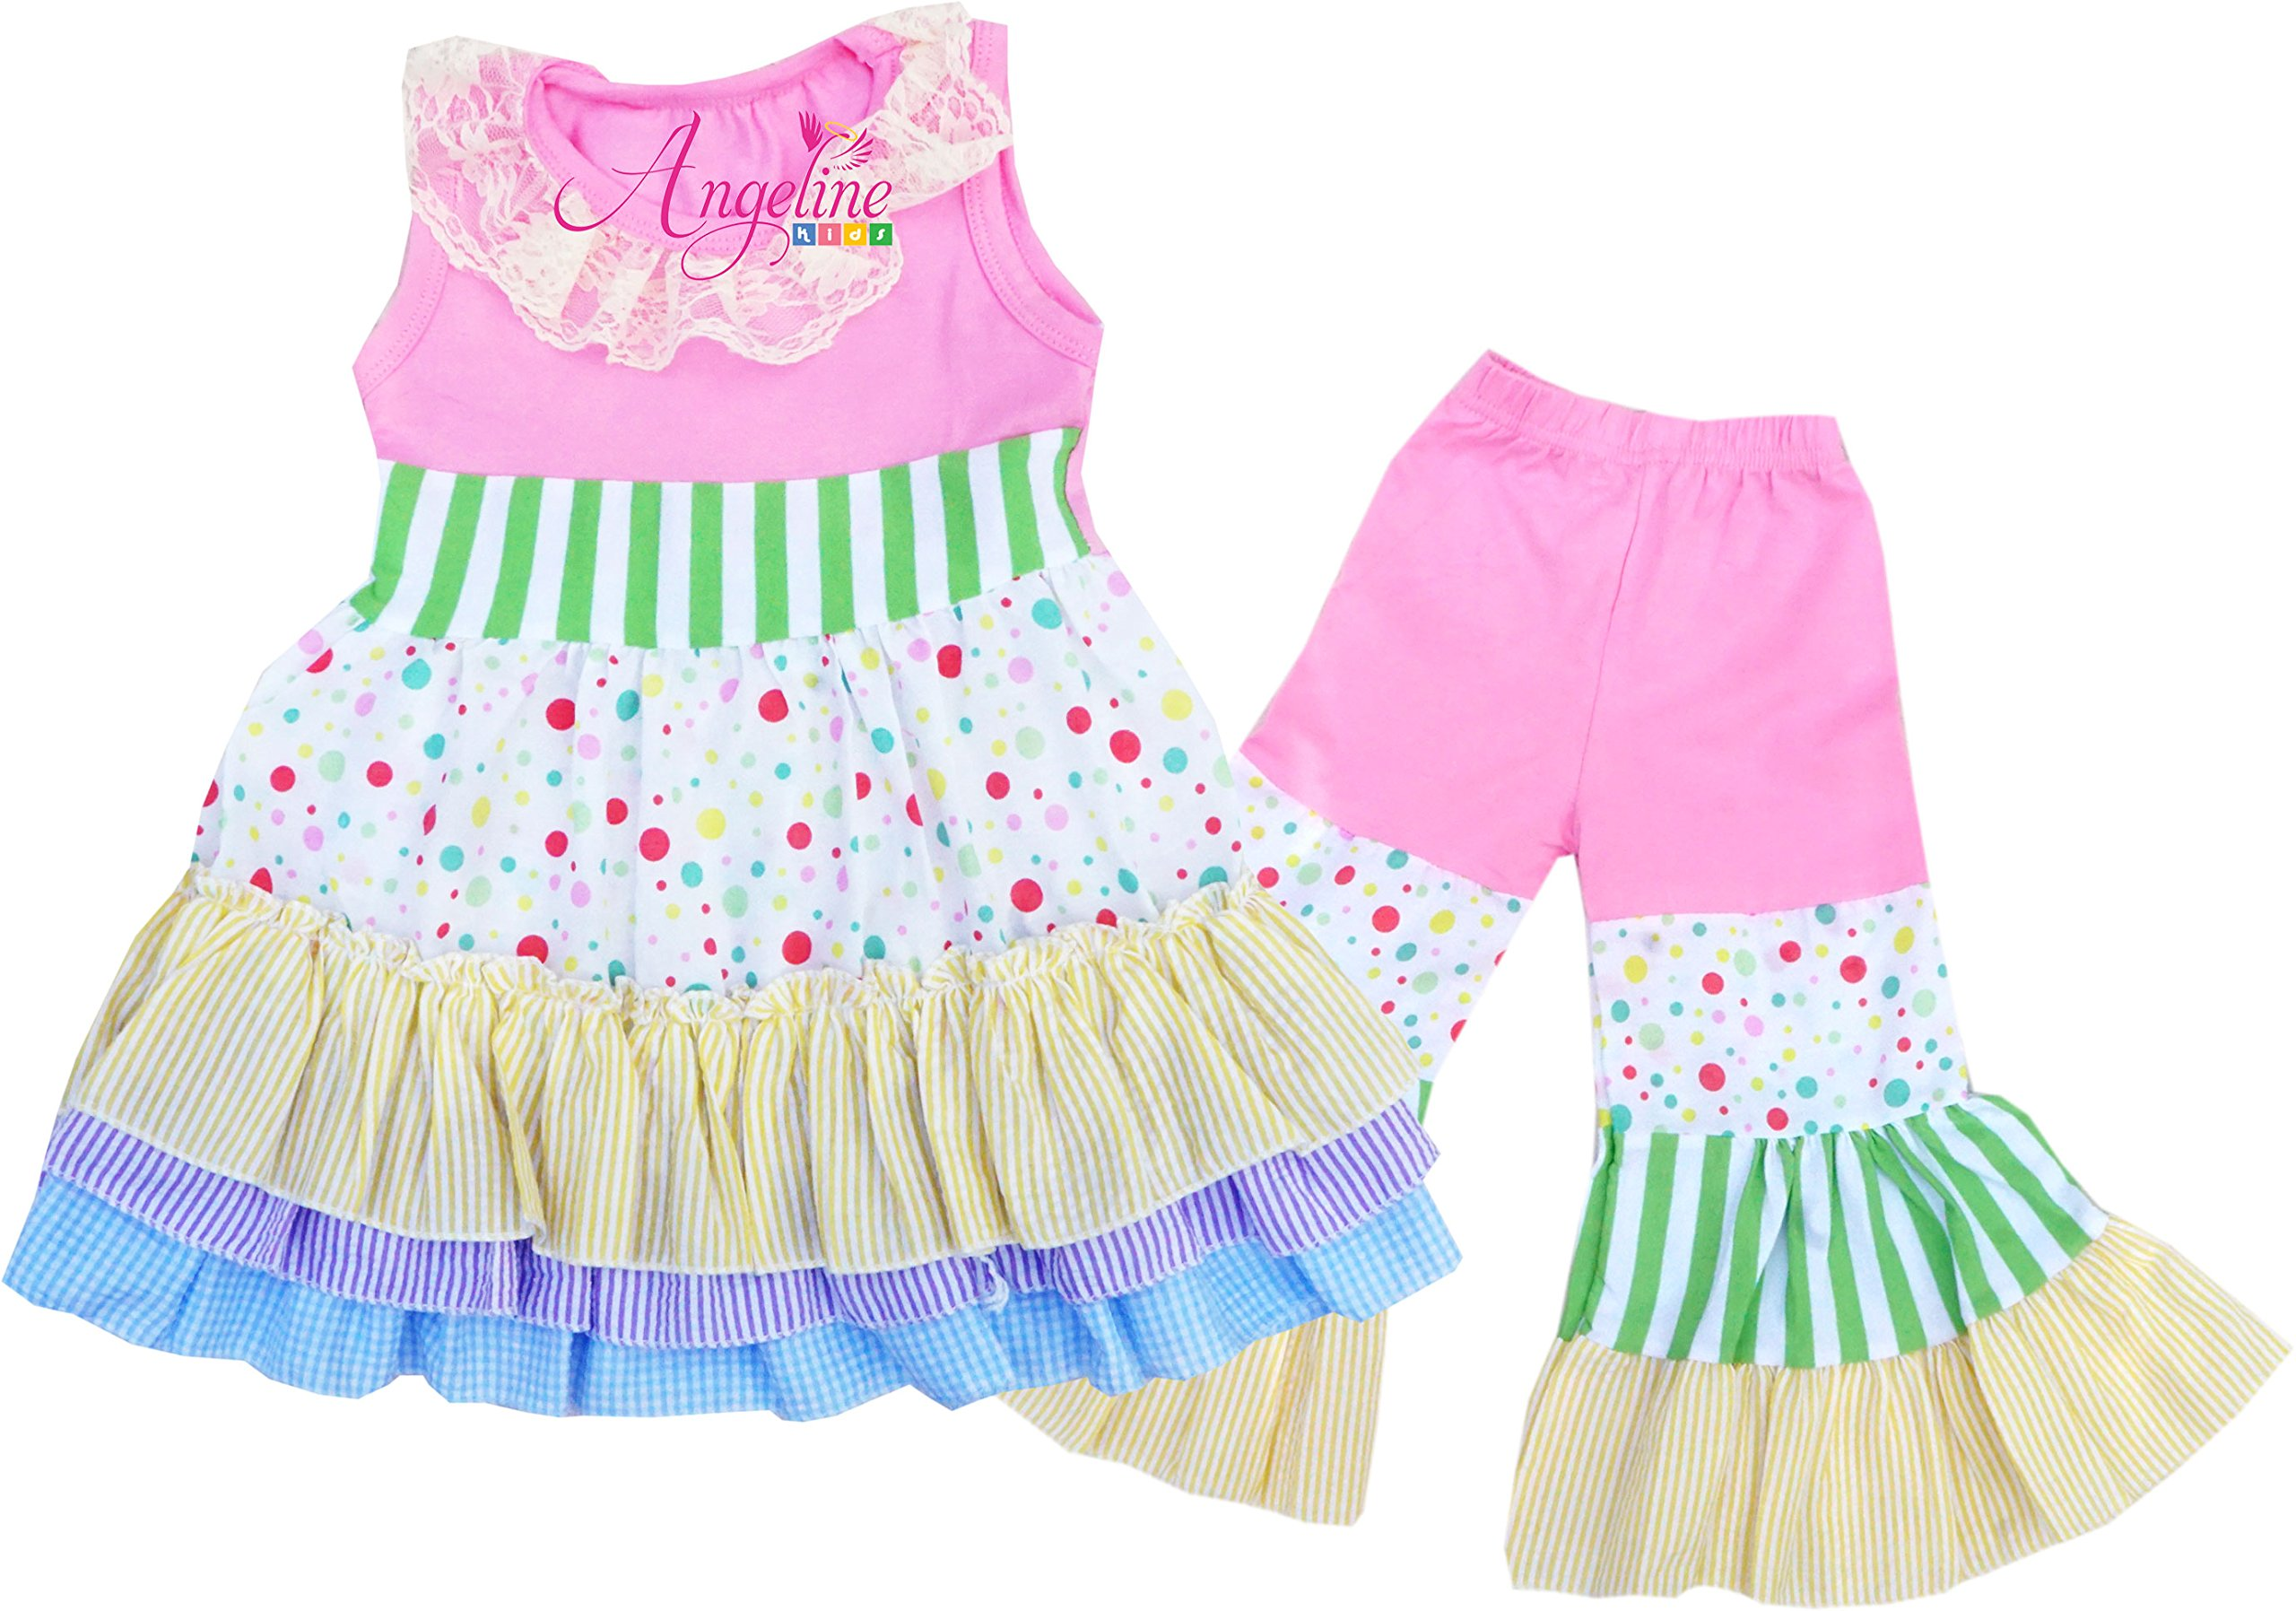 Toddler Little Girls Summer Holiday & Back to School Tiered Ruffles Flare Pant Set 2T